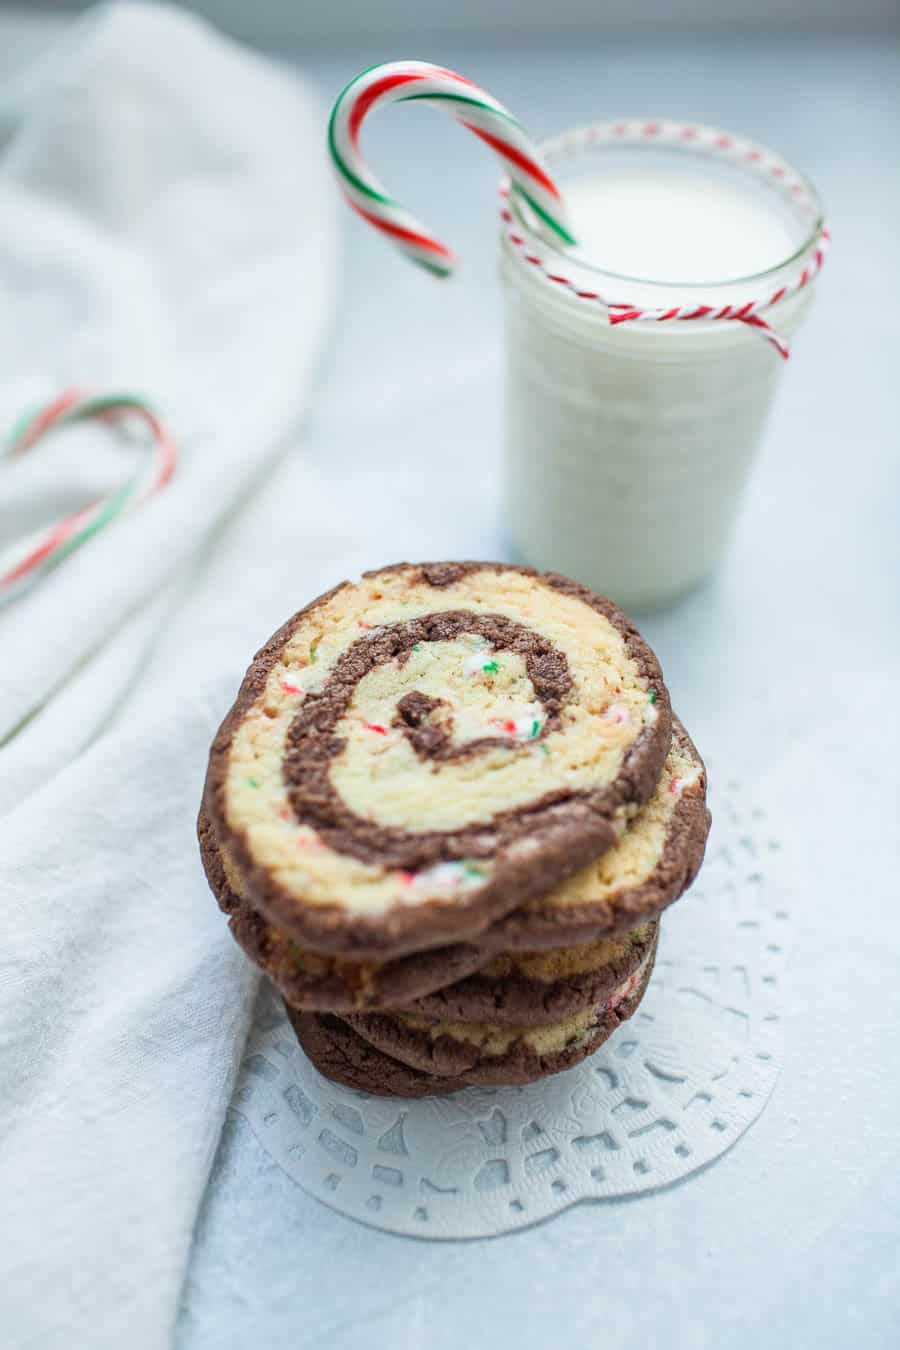 Chocolate Peppermint Pinwheel Cookies are the perfect cookie to share during the holidays! Two sheets of cookie dough, one that is smooth and chocolatey and one that is infused with peppermint and candy cane peppermint pieces, are rolled together to create these beautiful and festive pinwheel cookie slices. If you dream about the combination of peppermint and chocolate together during the holidays, these chocolate peppermint pinwheel cookies will be your new favorite Christmas cookie!